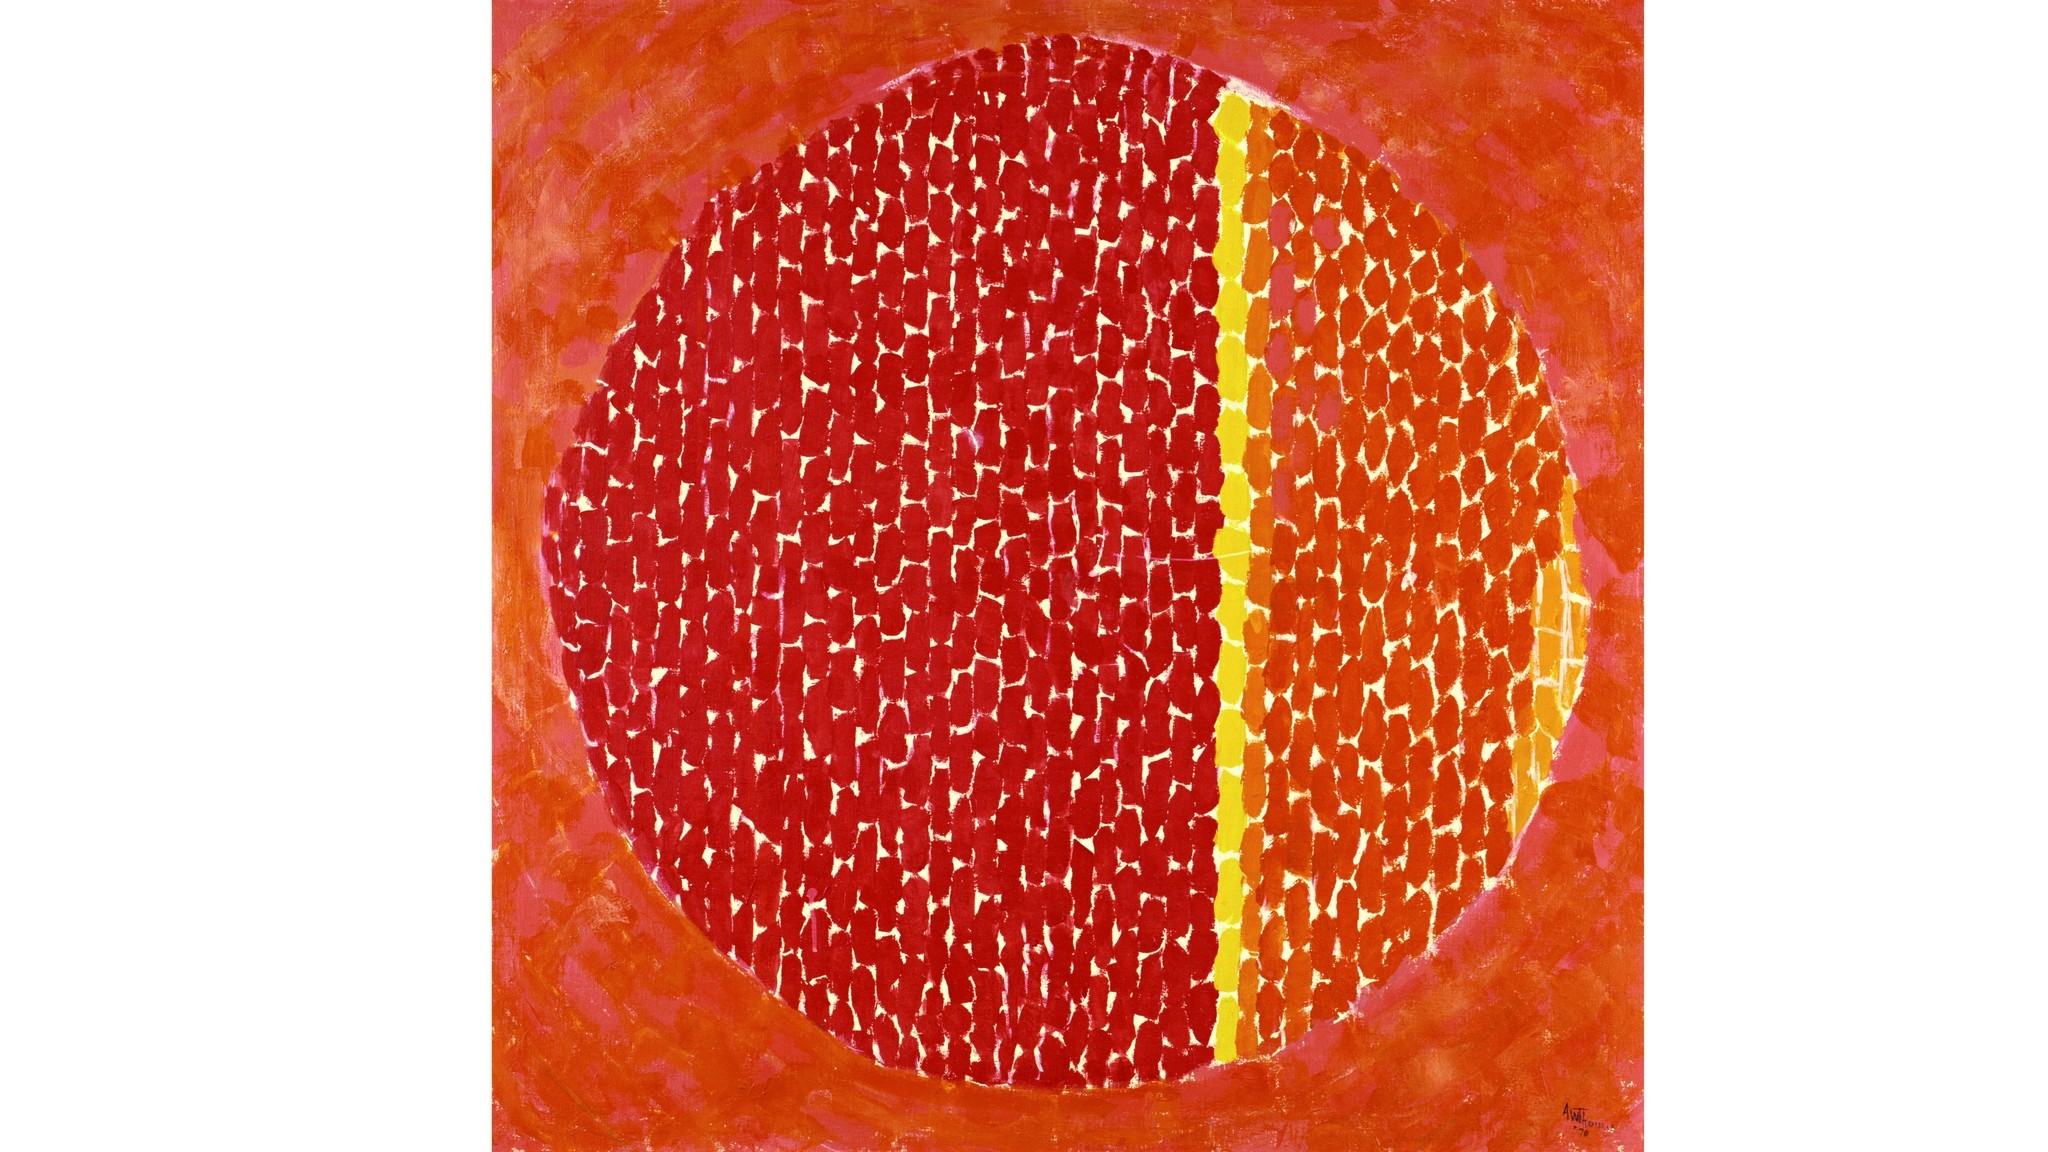 Snoopy Sees Earth Wrapped In Sunset, 1970, Alma Thomas, acrylic on canvas, 121.6 × 121.6 cm / 48 × 4